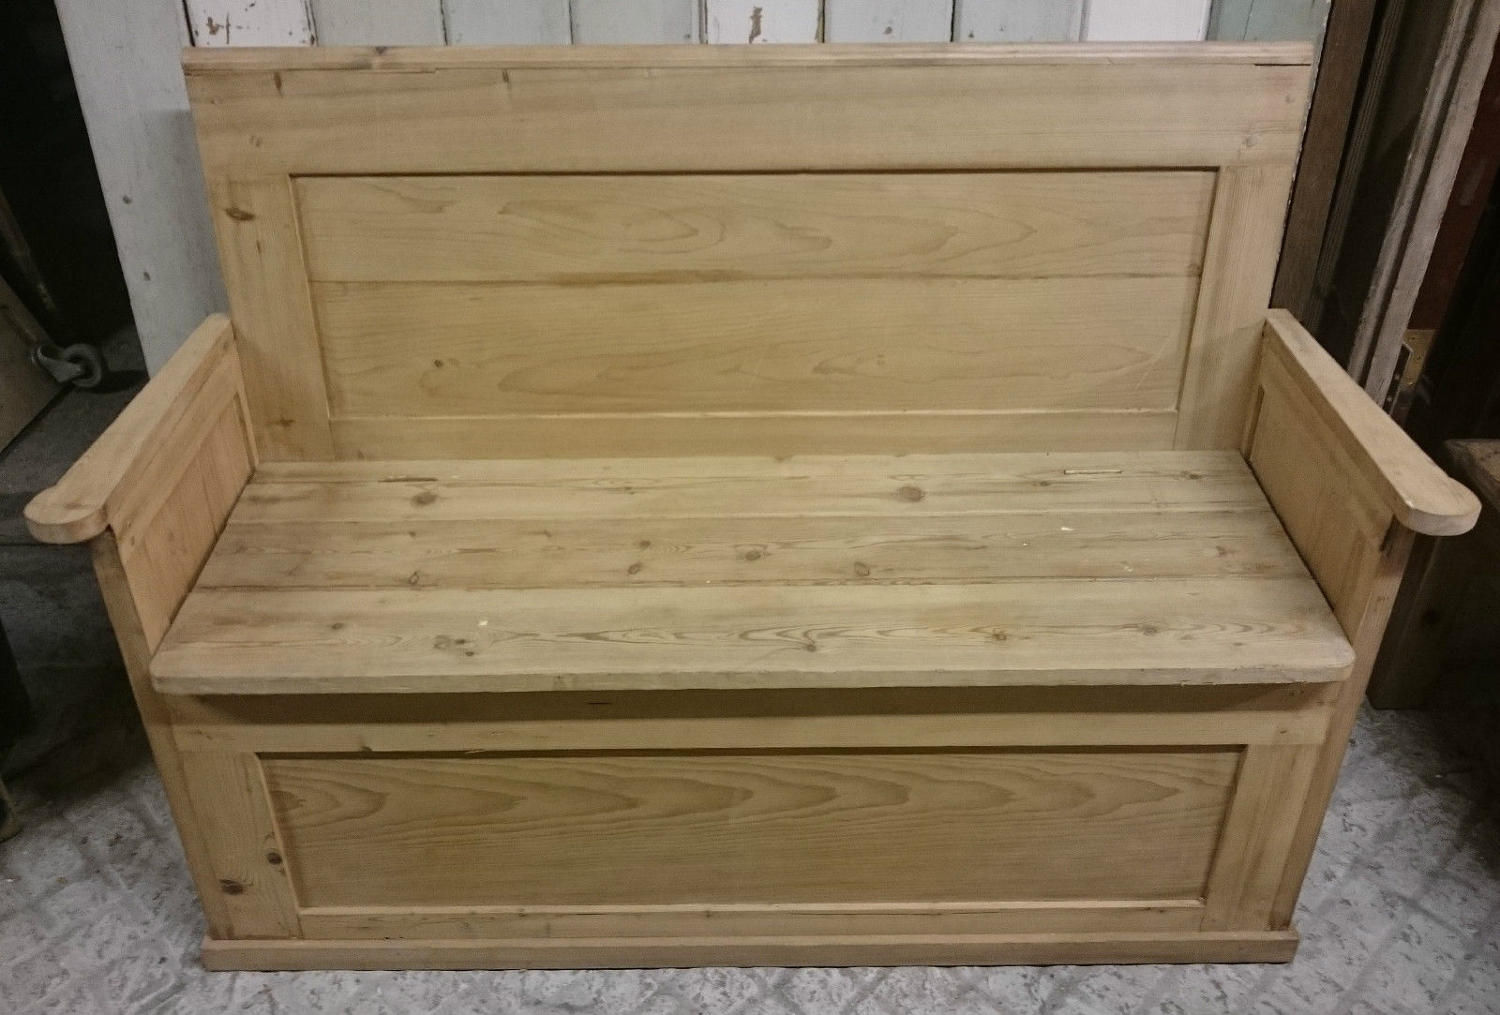 A Rustic Pine Pew with Storage Upcycled From Pine Doors ref 914